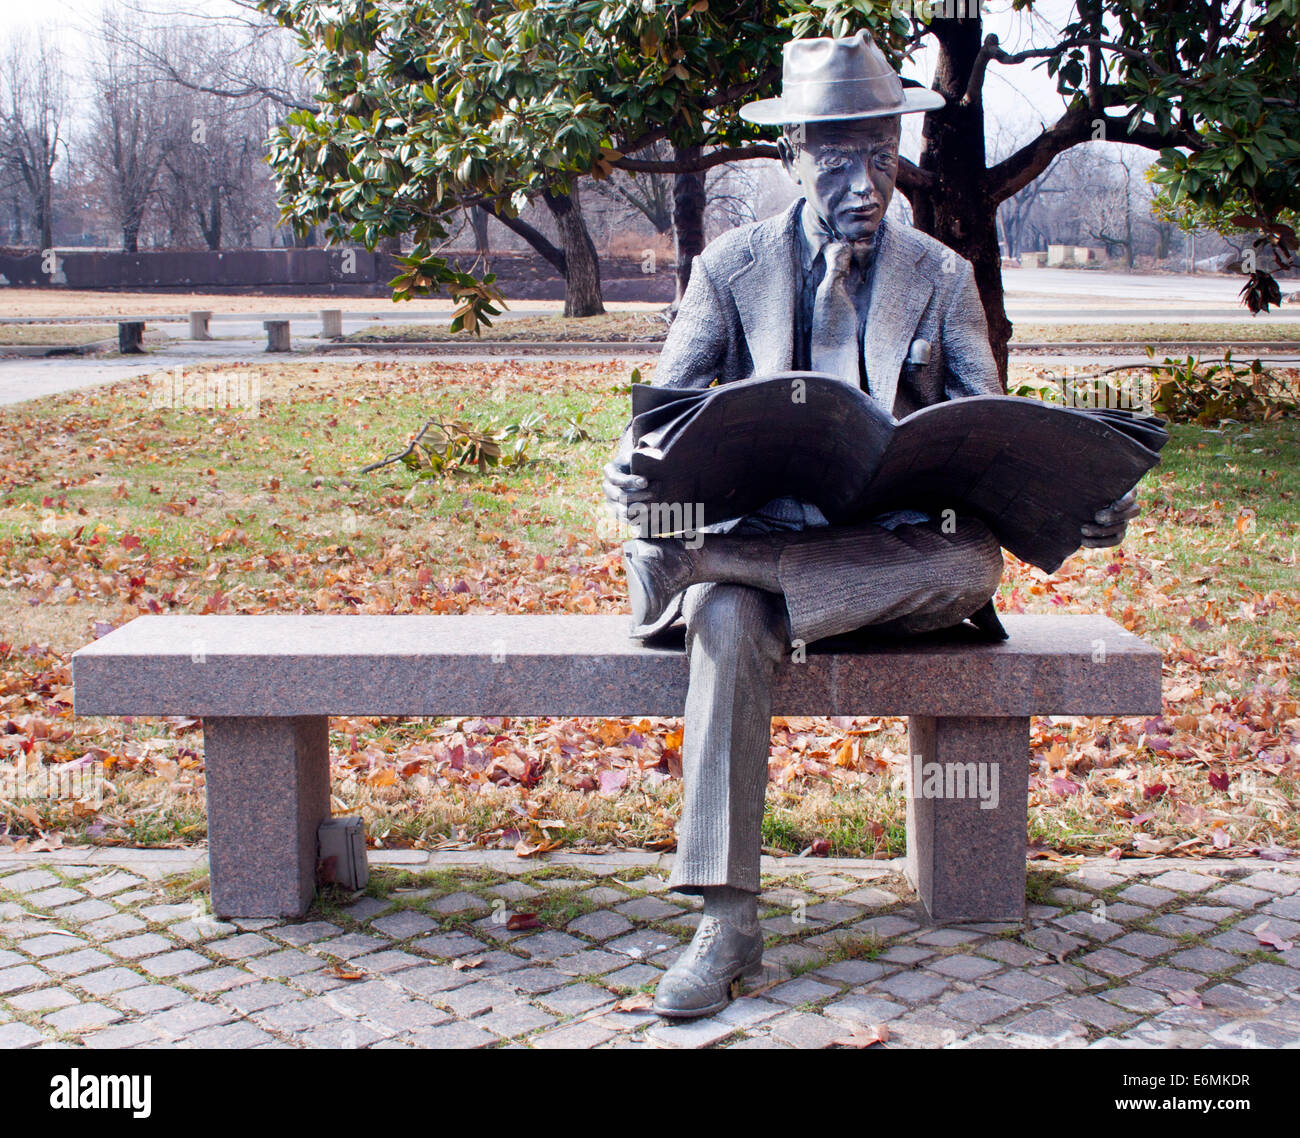 Man Reading Newspaper statue in Tulsa Oklahoma - Stock Image